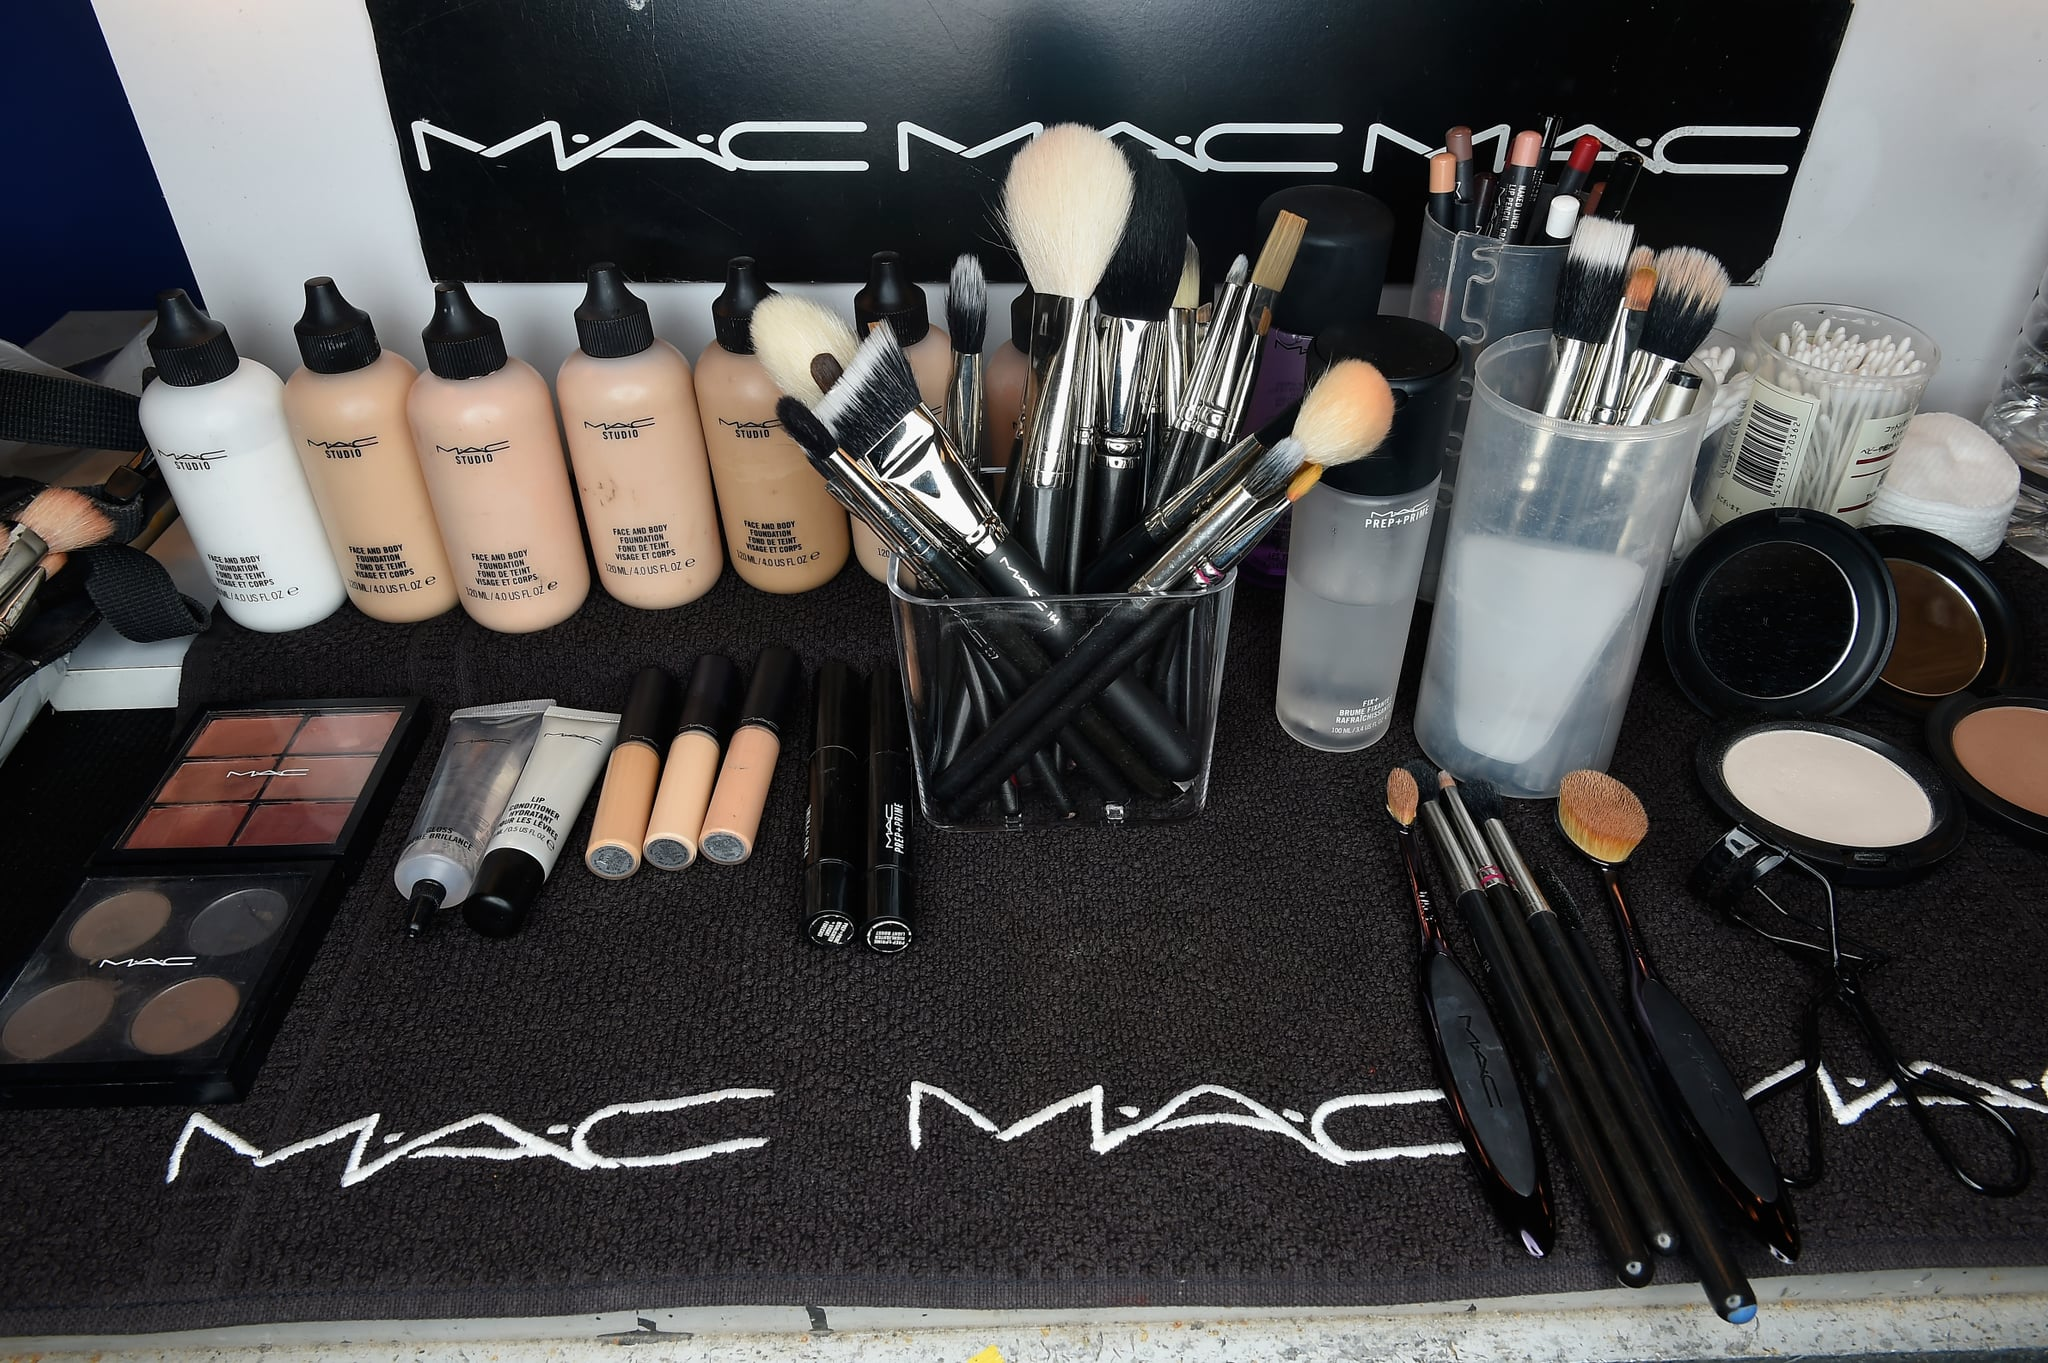 ISTANBUL, TURKEY - OCTOBER 11:  Make-Up products by MAC Cosmetics are seen backstage ahead of the Cihan Nacar show during Mercedes-Benz Fashion Week Istanbul at Zorlu Center on October 11, 2016 in Istanbul, Turkey.  (Photo by S. Alemdar/Getty Images for IMG)